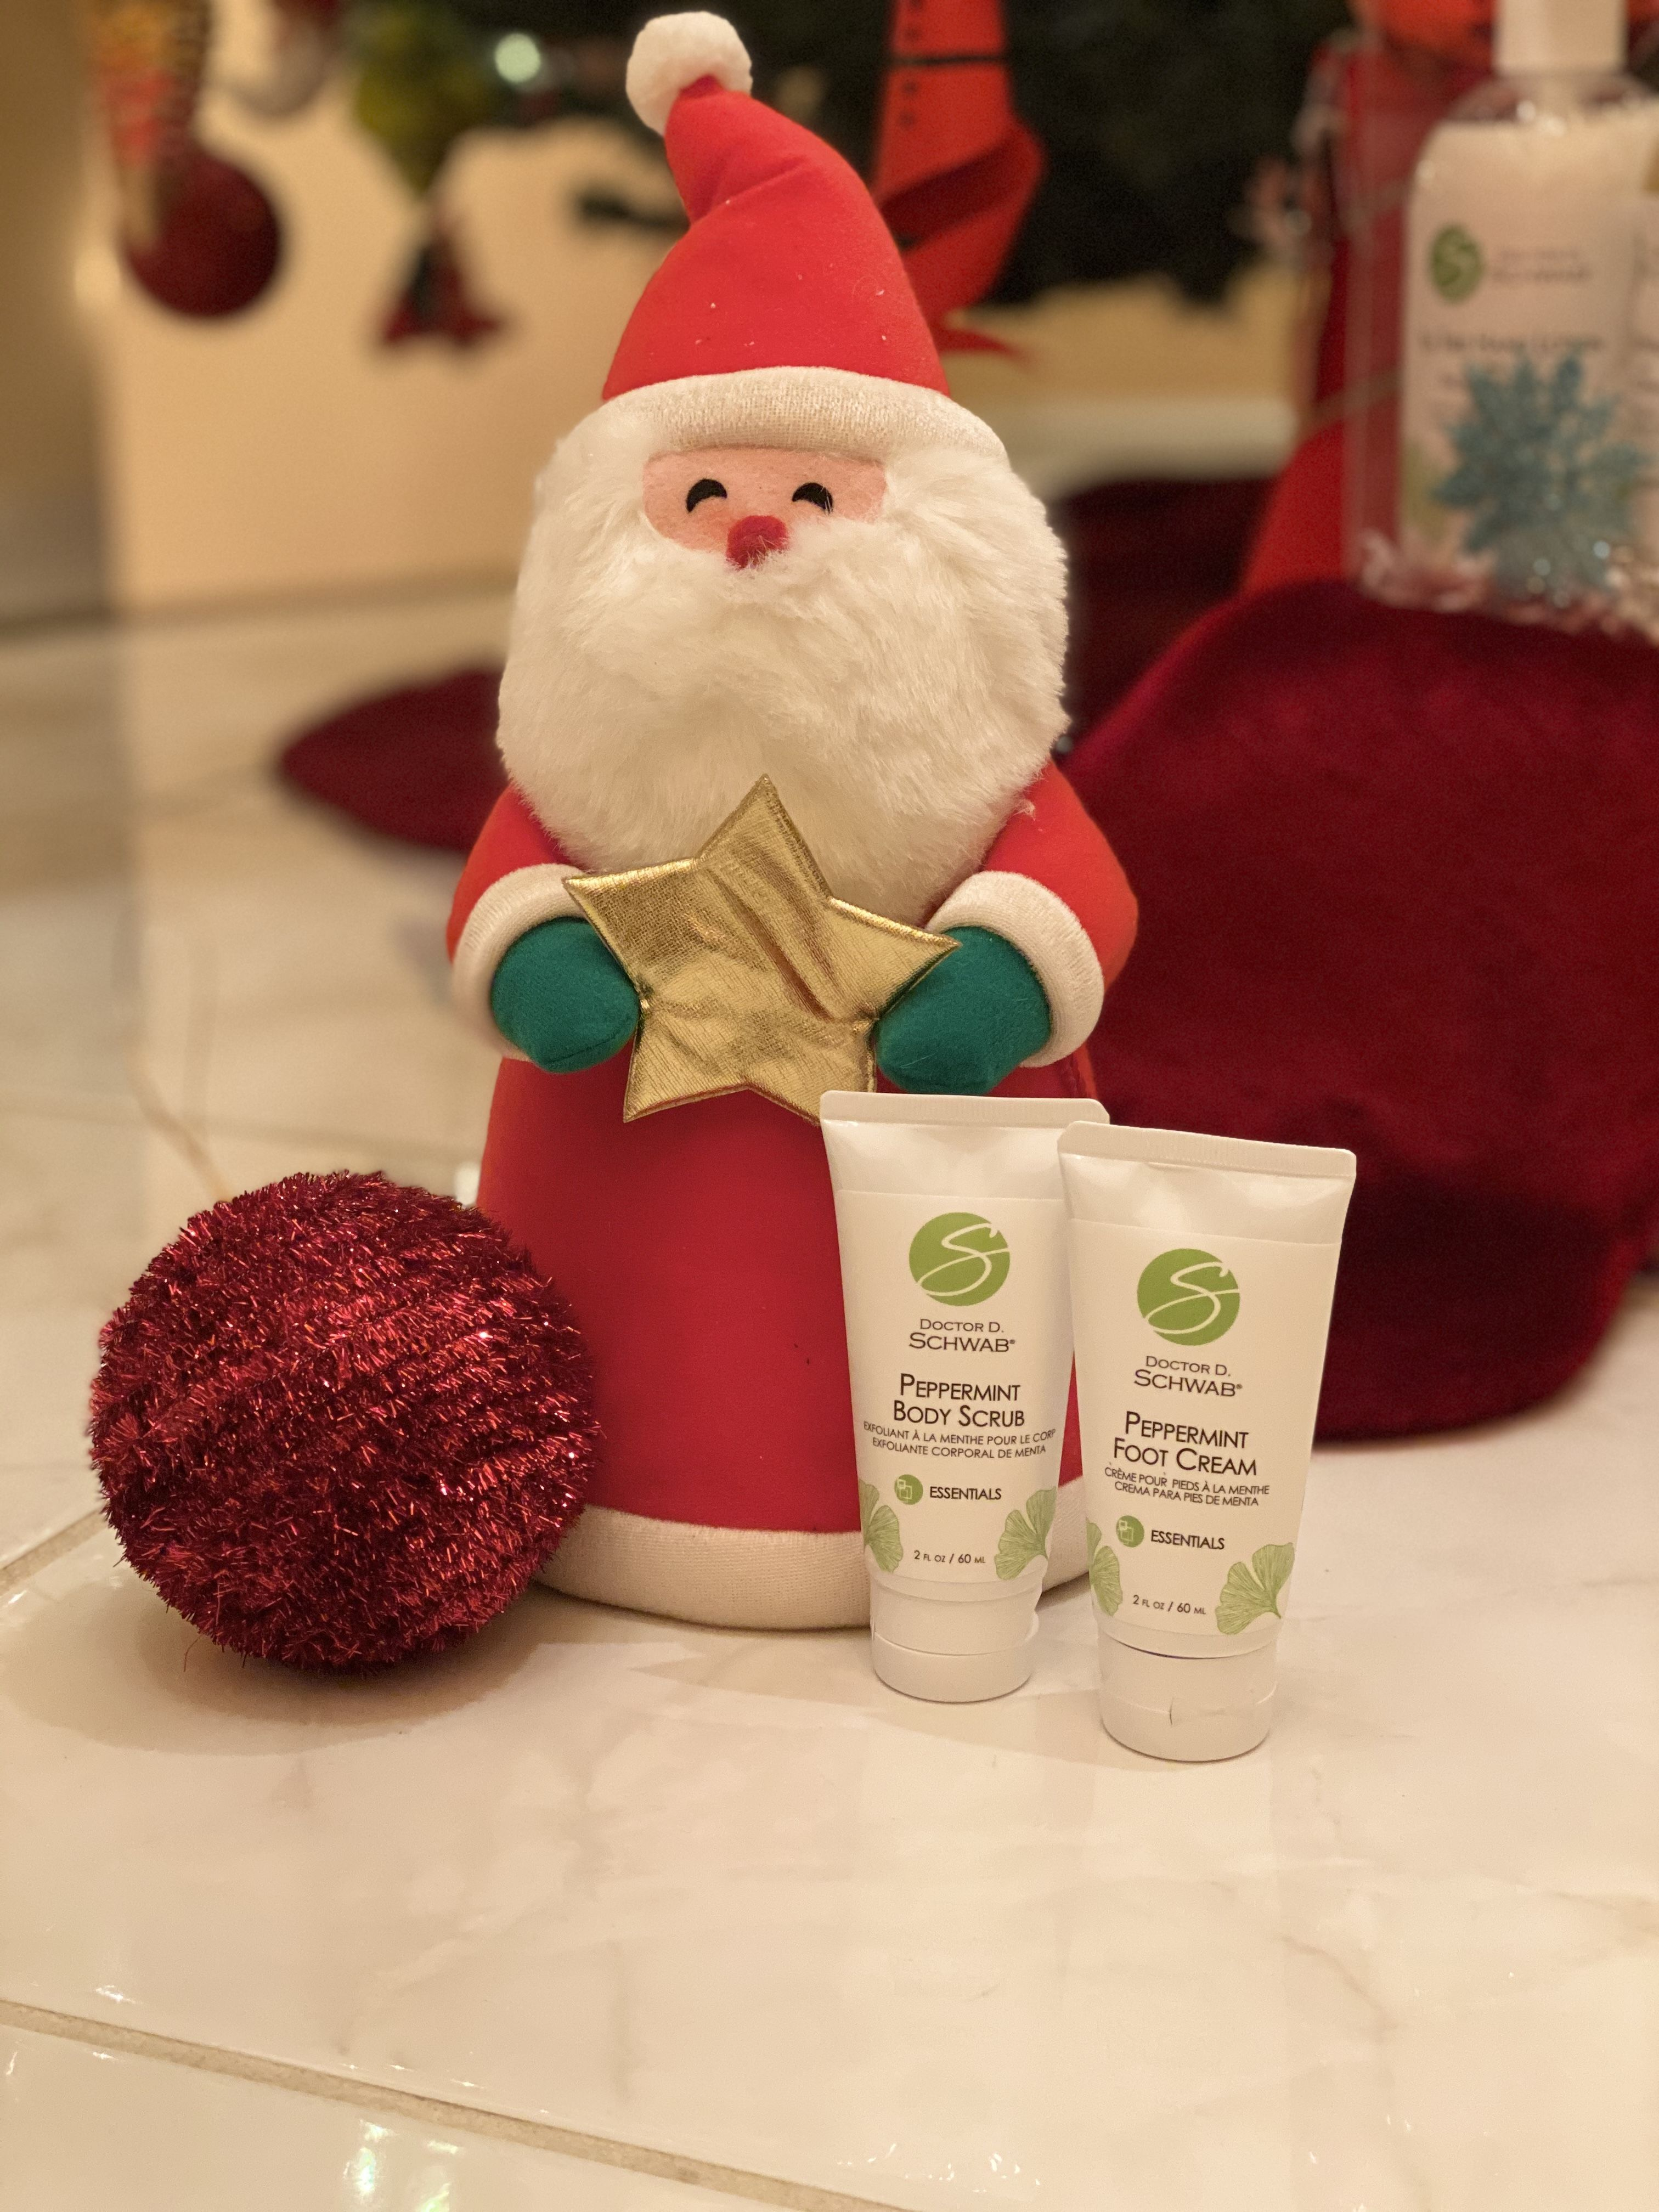 Les Schwab Christmas Eve 2021 41 Age Defying Ideas In 2021 Age Defying Skin Care Treatments Premature Aging